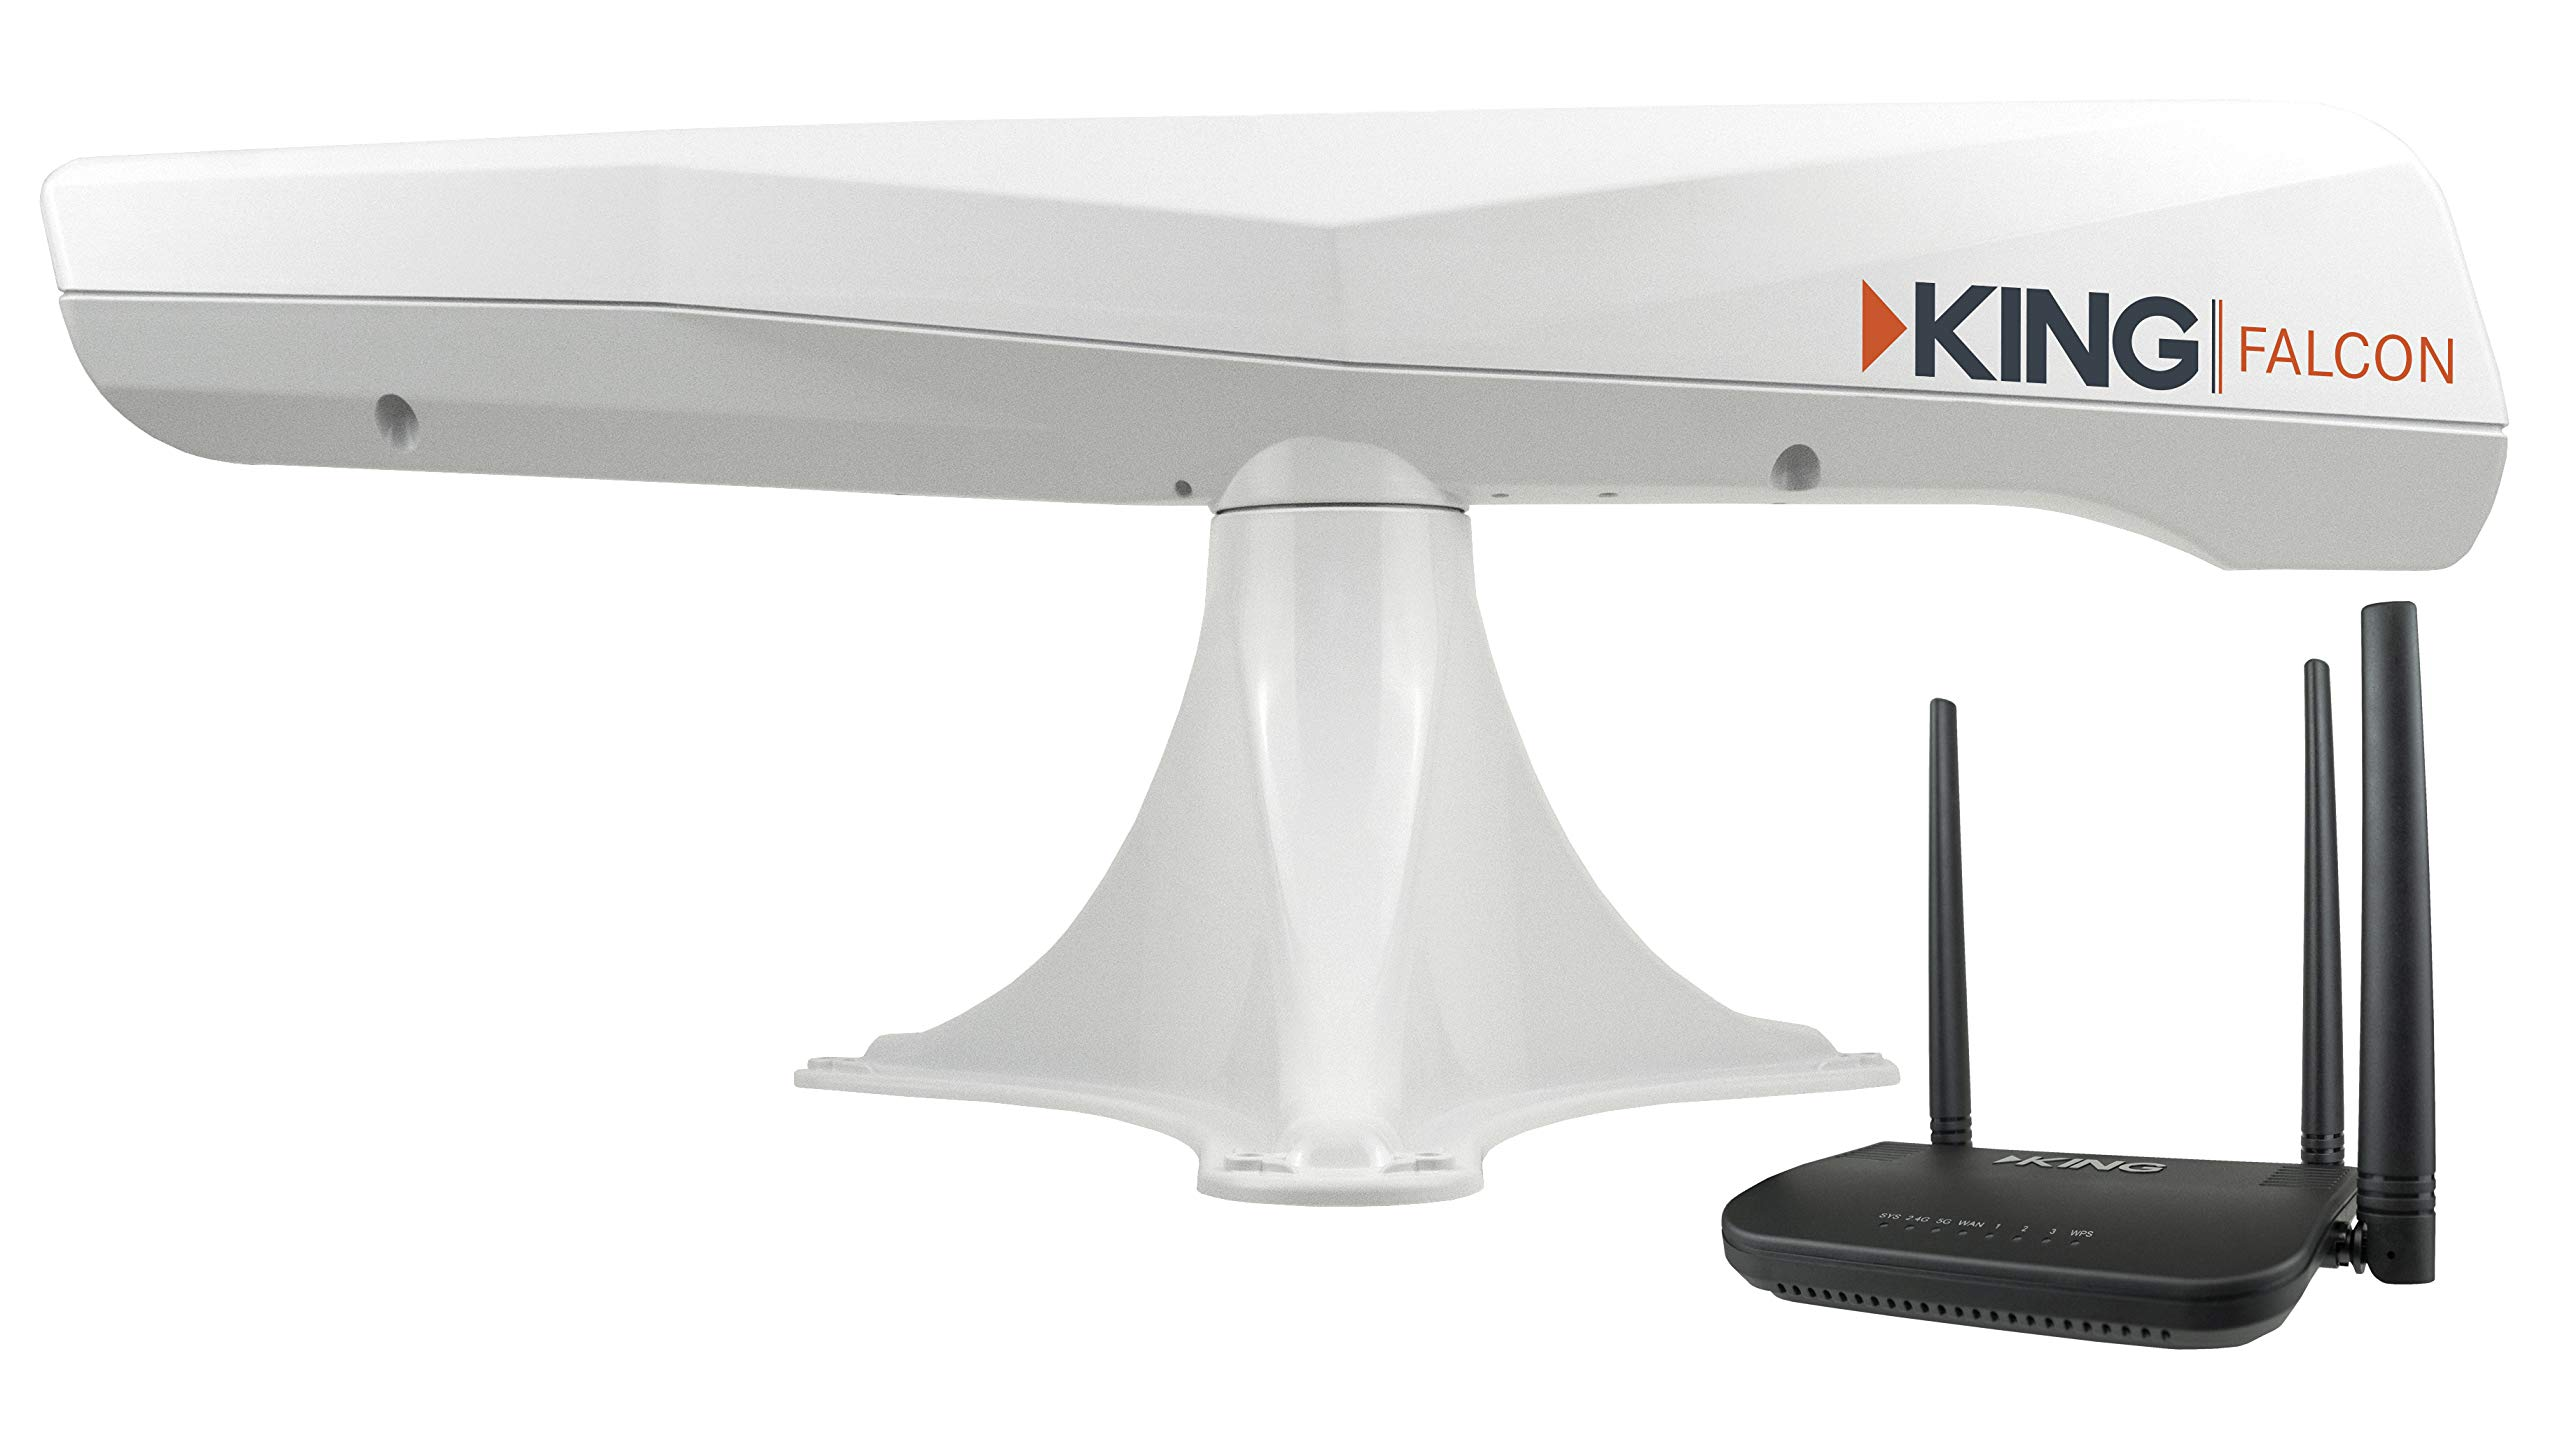 KING KF1000 Falcon Automatic Directional WiFi Antenna with WiFiMax Router and Range Extender - White by KING